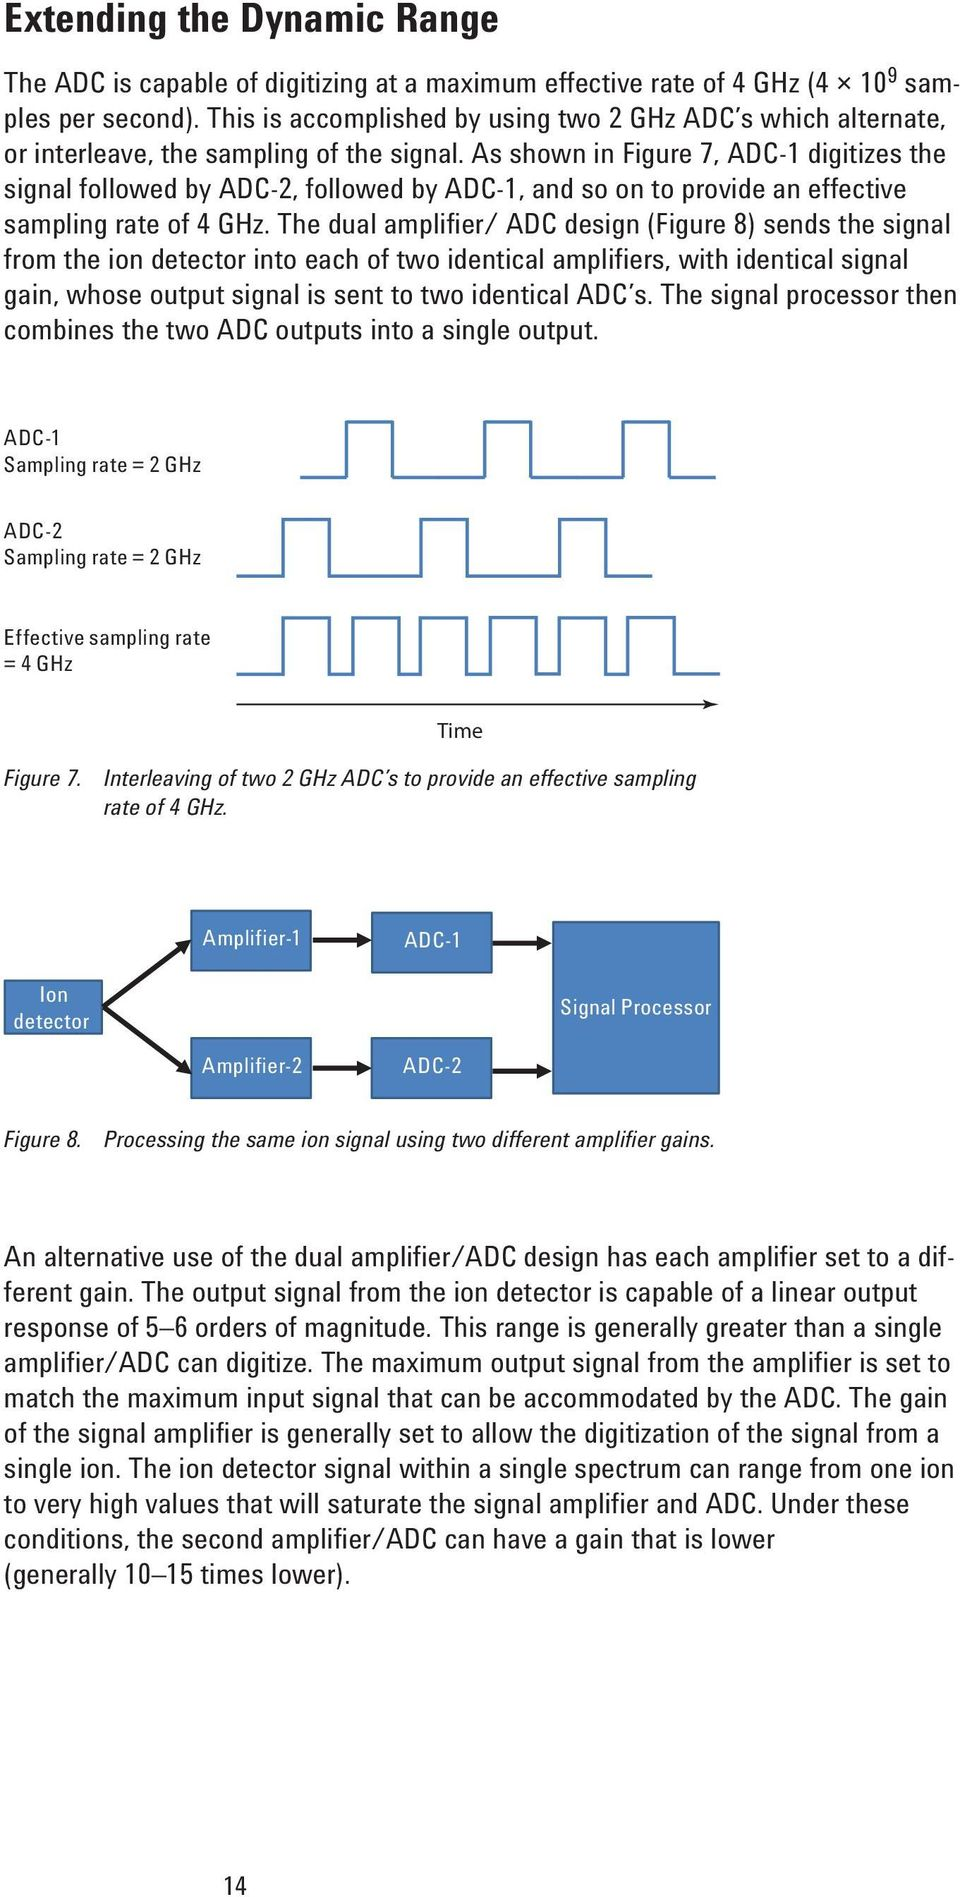 As shown in Figure 7, ADC-1 digitizes the signal followed by ADC-2, followed by ADC-1, and so on to provide an effective sampling rate of 4 GHz.